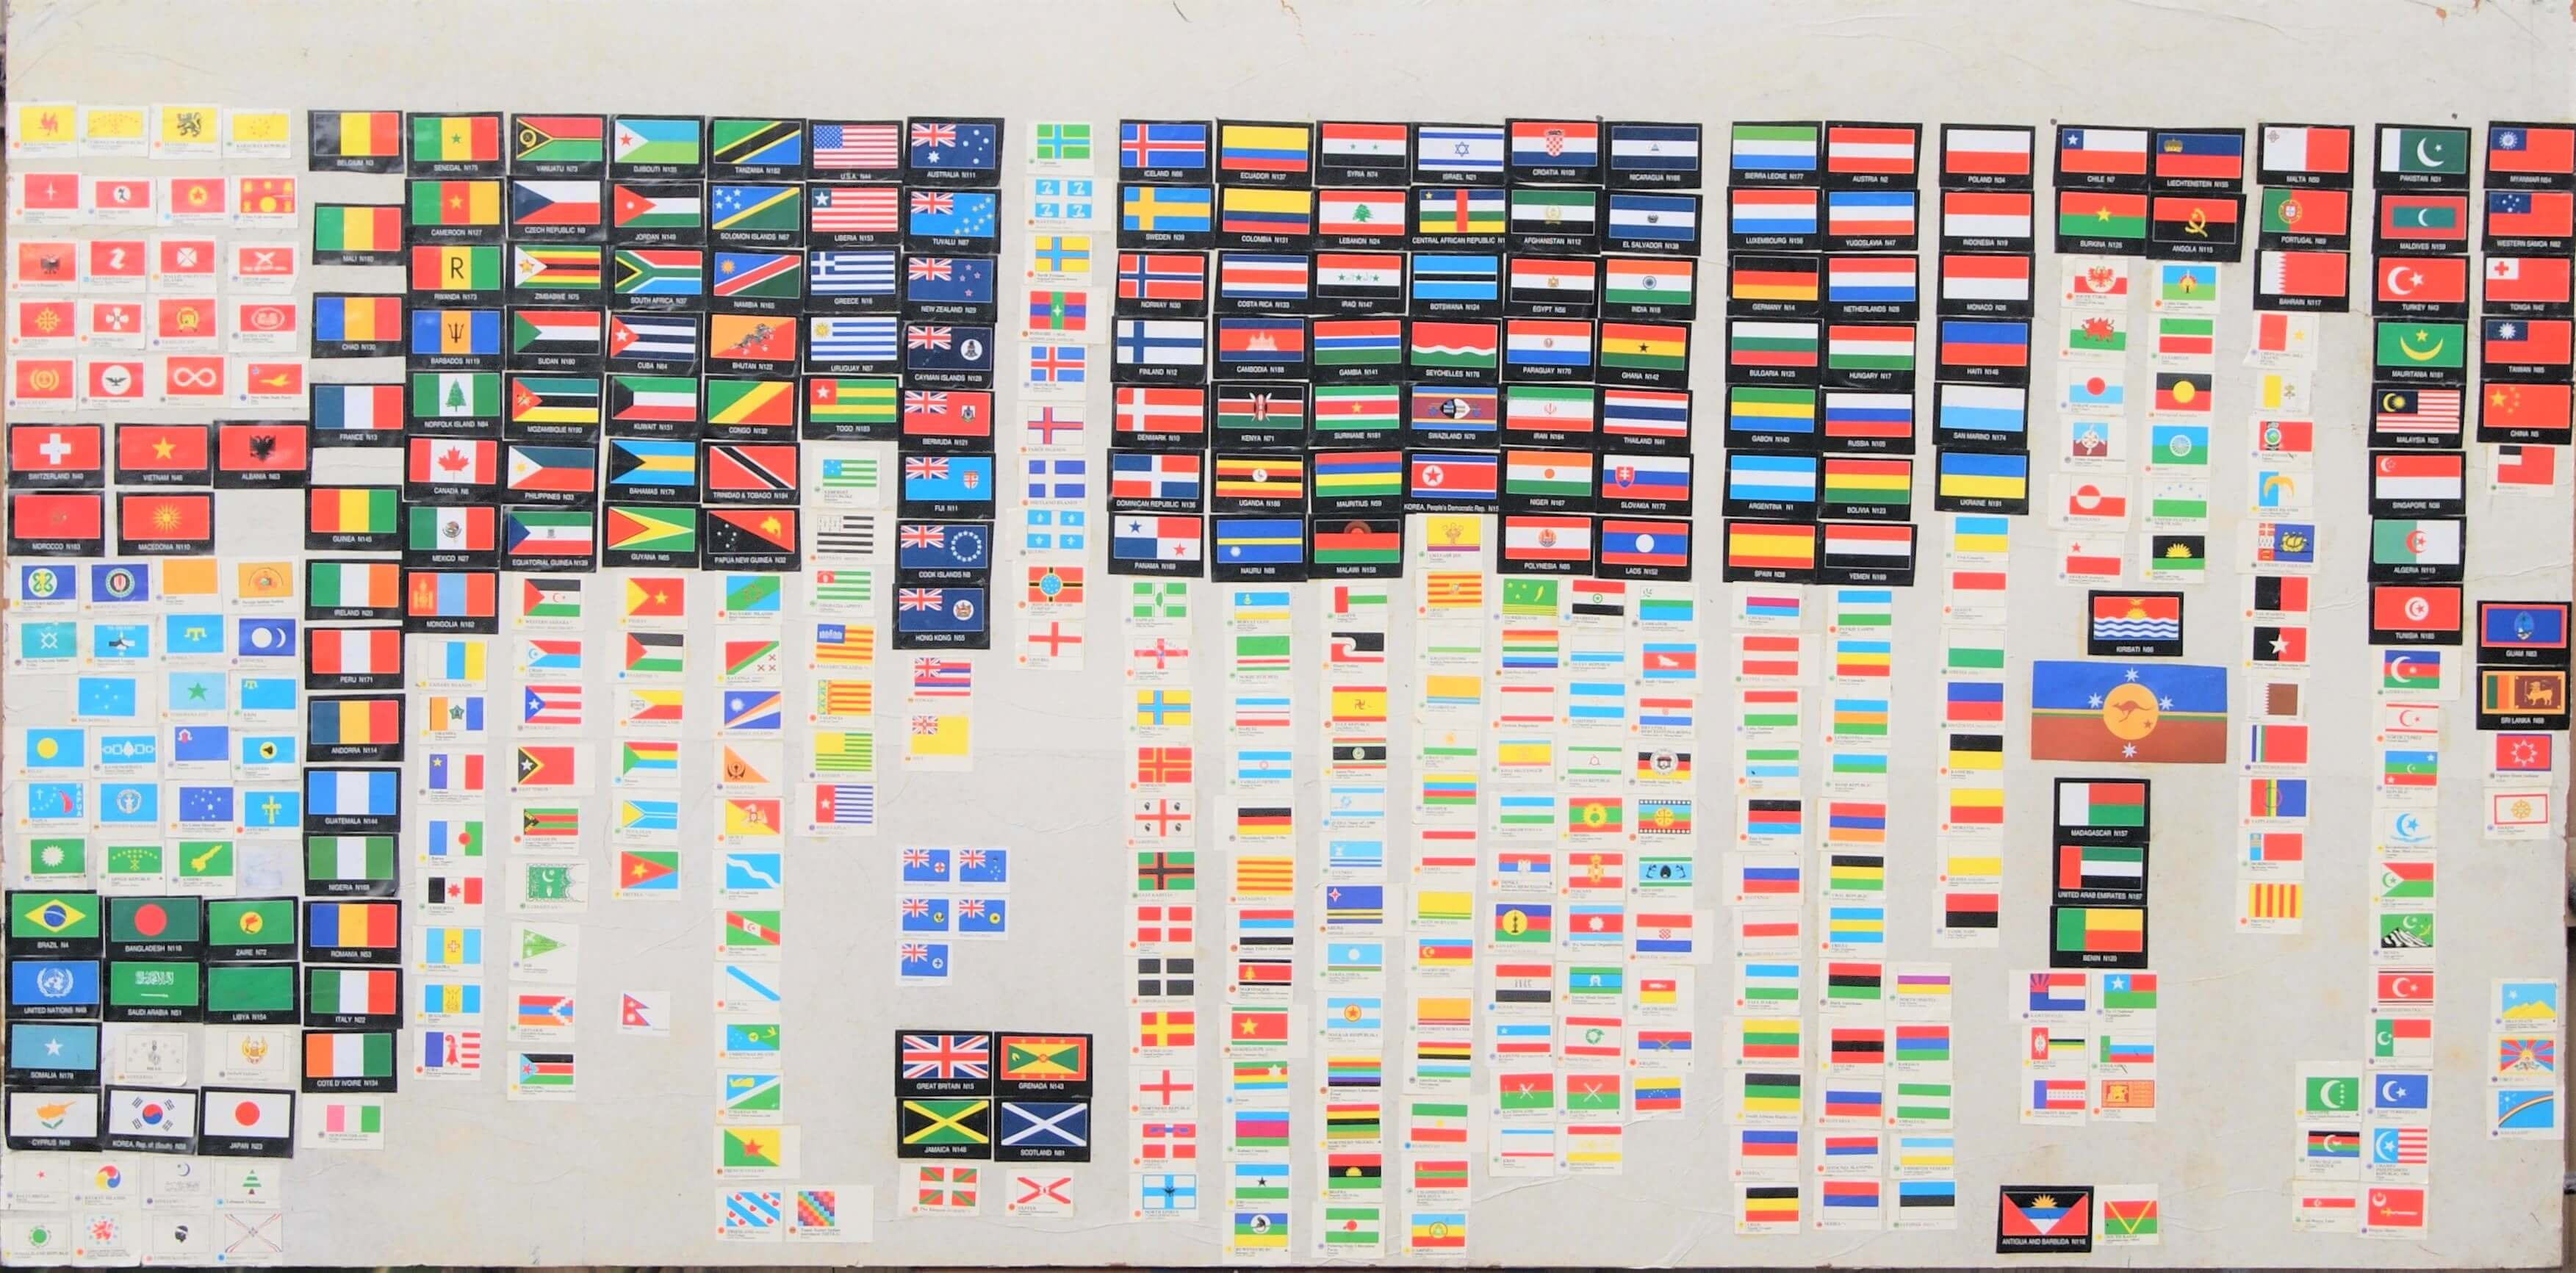 Vexillography Chart